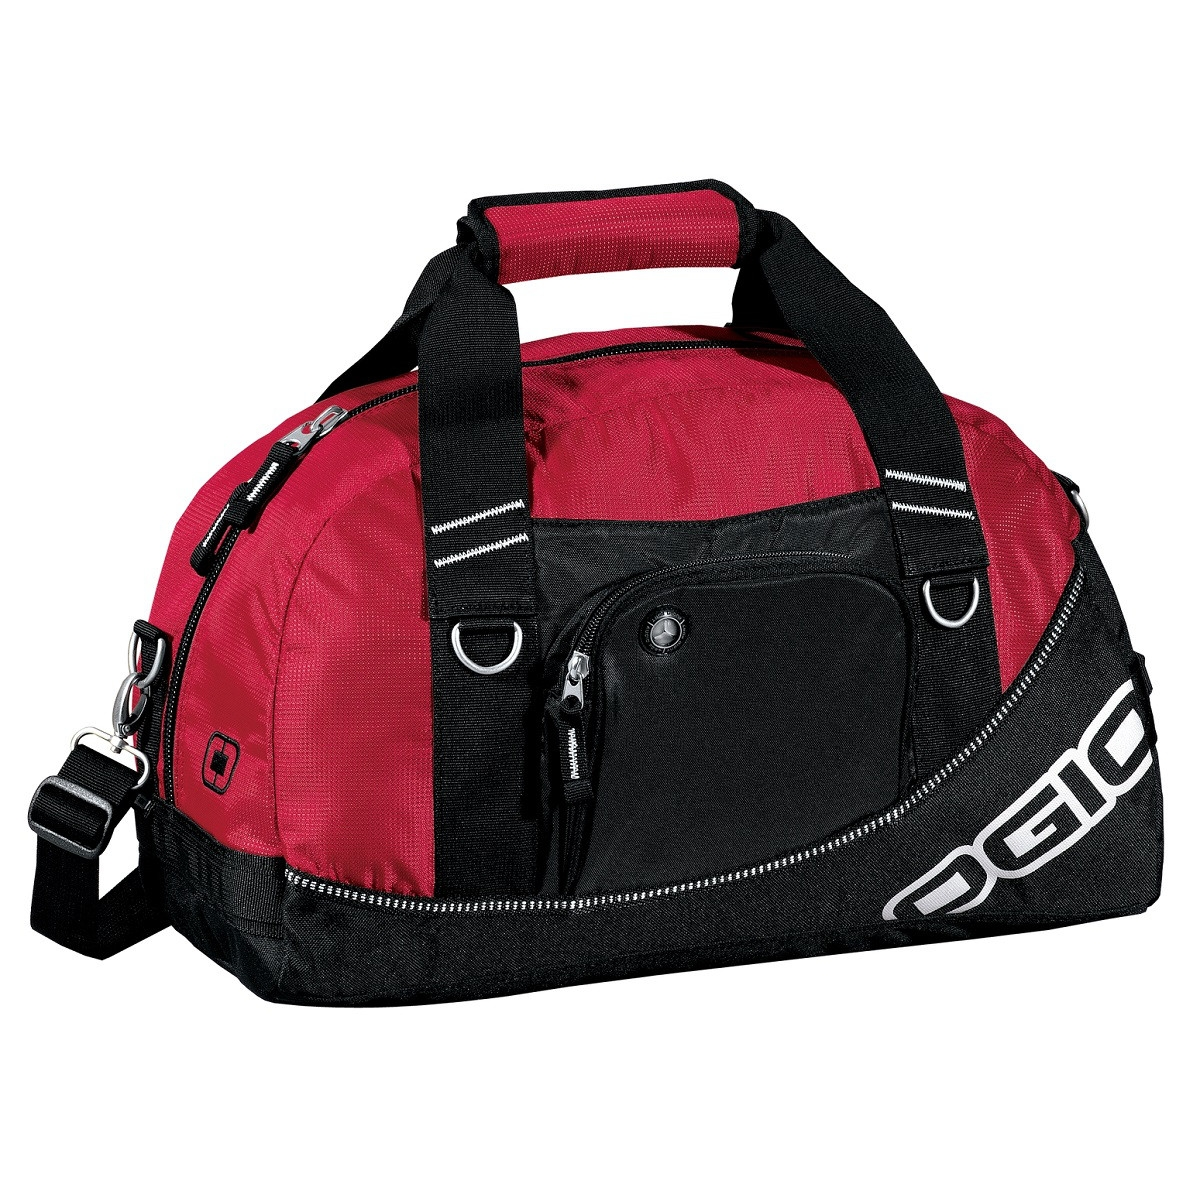 Go from the course to the gym with the OGIO Doppler Toiletry Bag. Multiple compartments provide plenty of versatile storage for all the essentials, and the swivel hook .